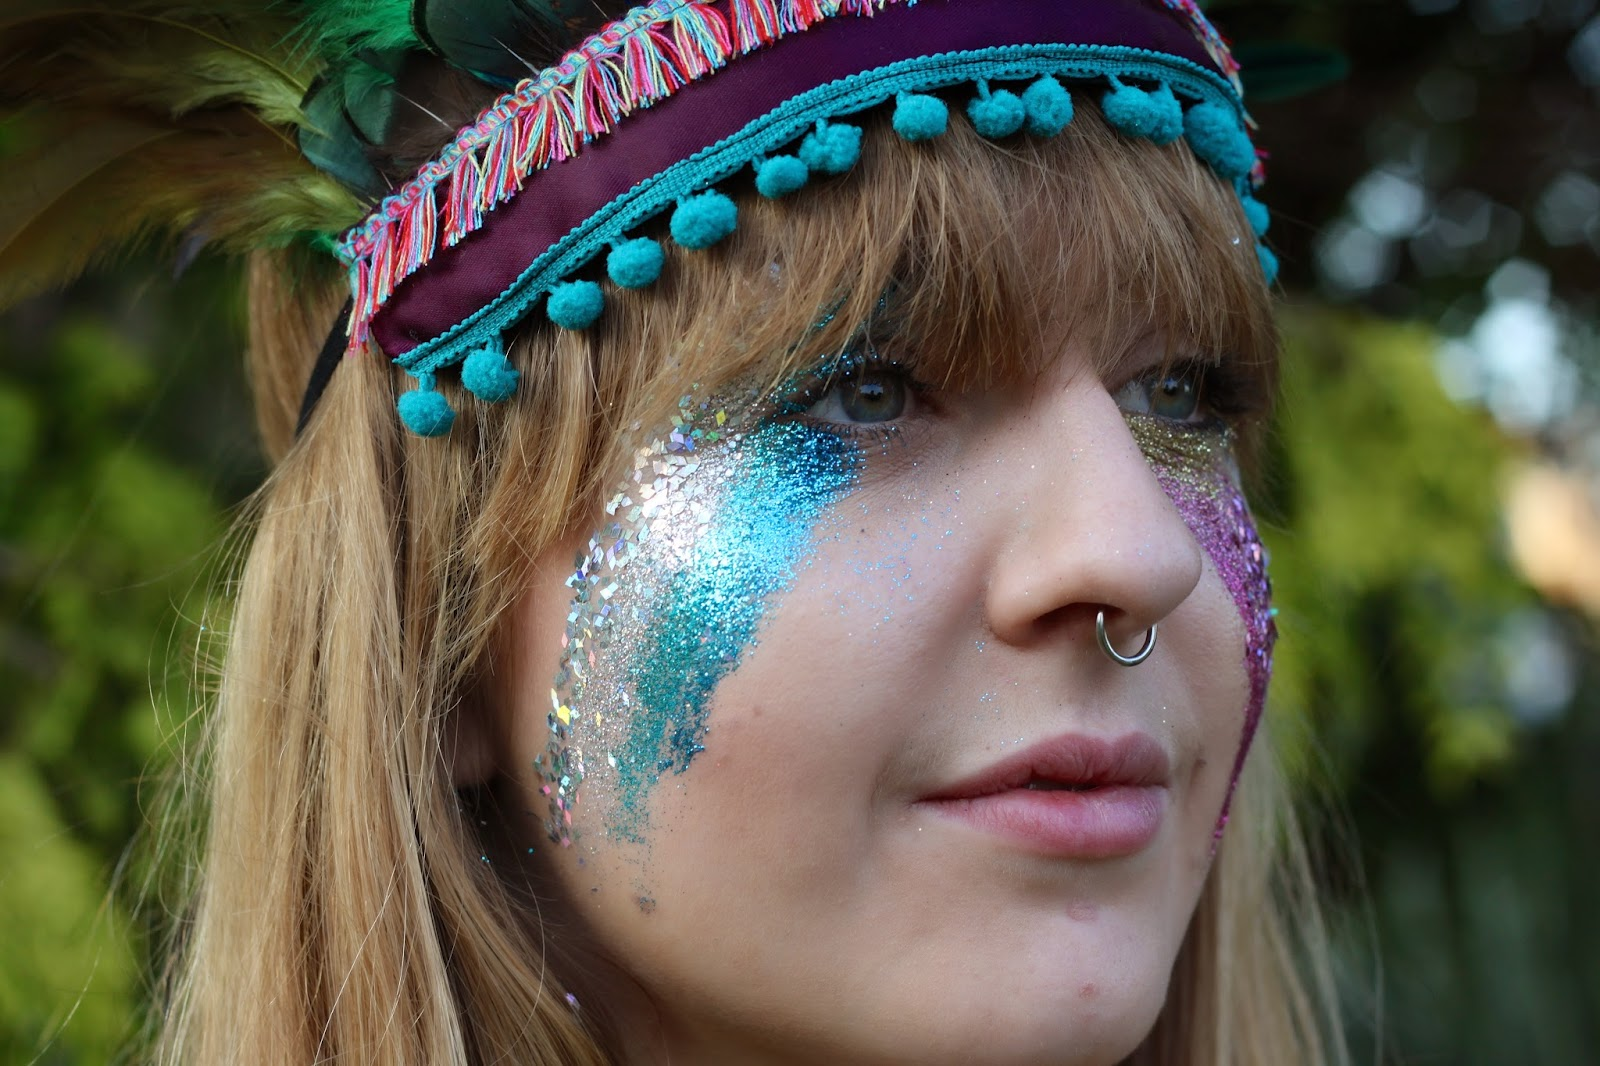 dulcie's feathers, festival, glitter, face paint, festival style, turquoise